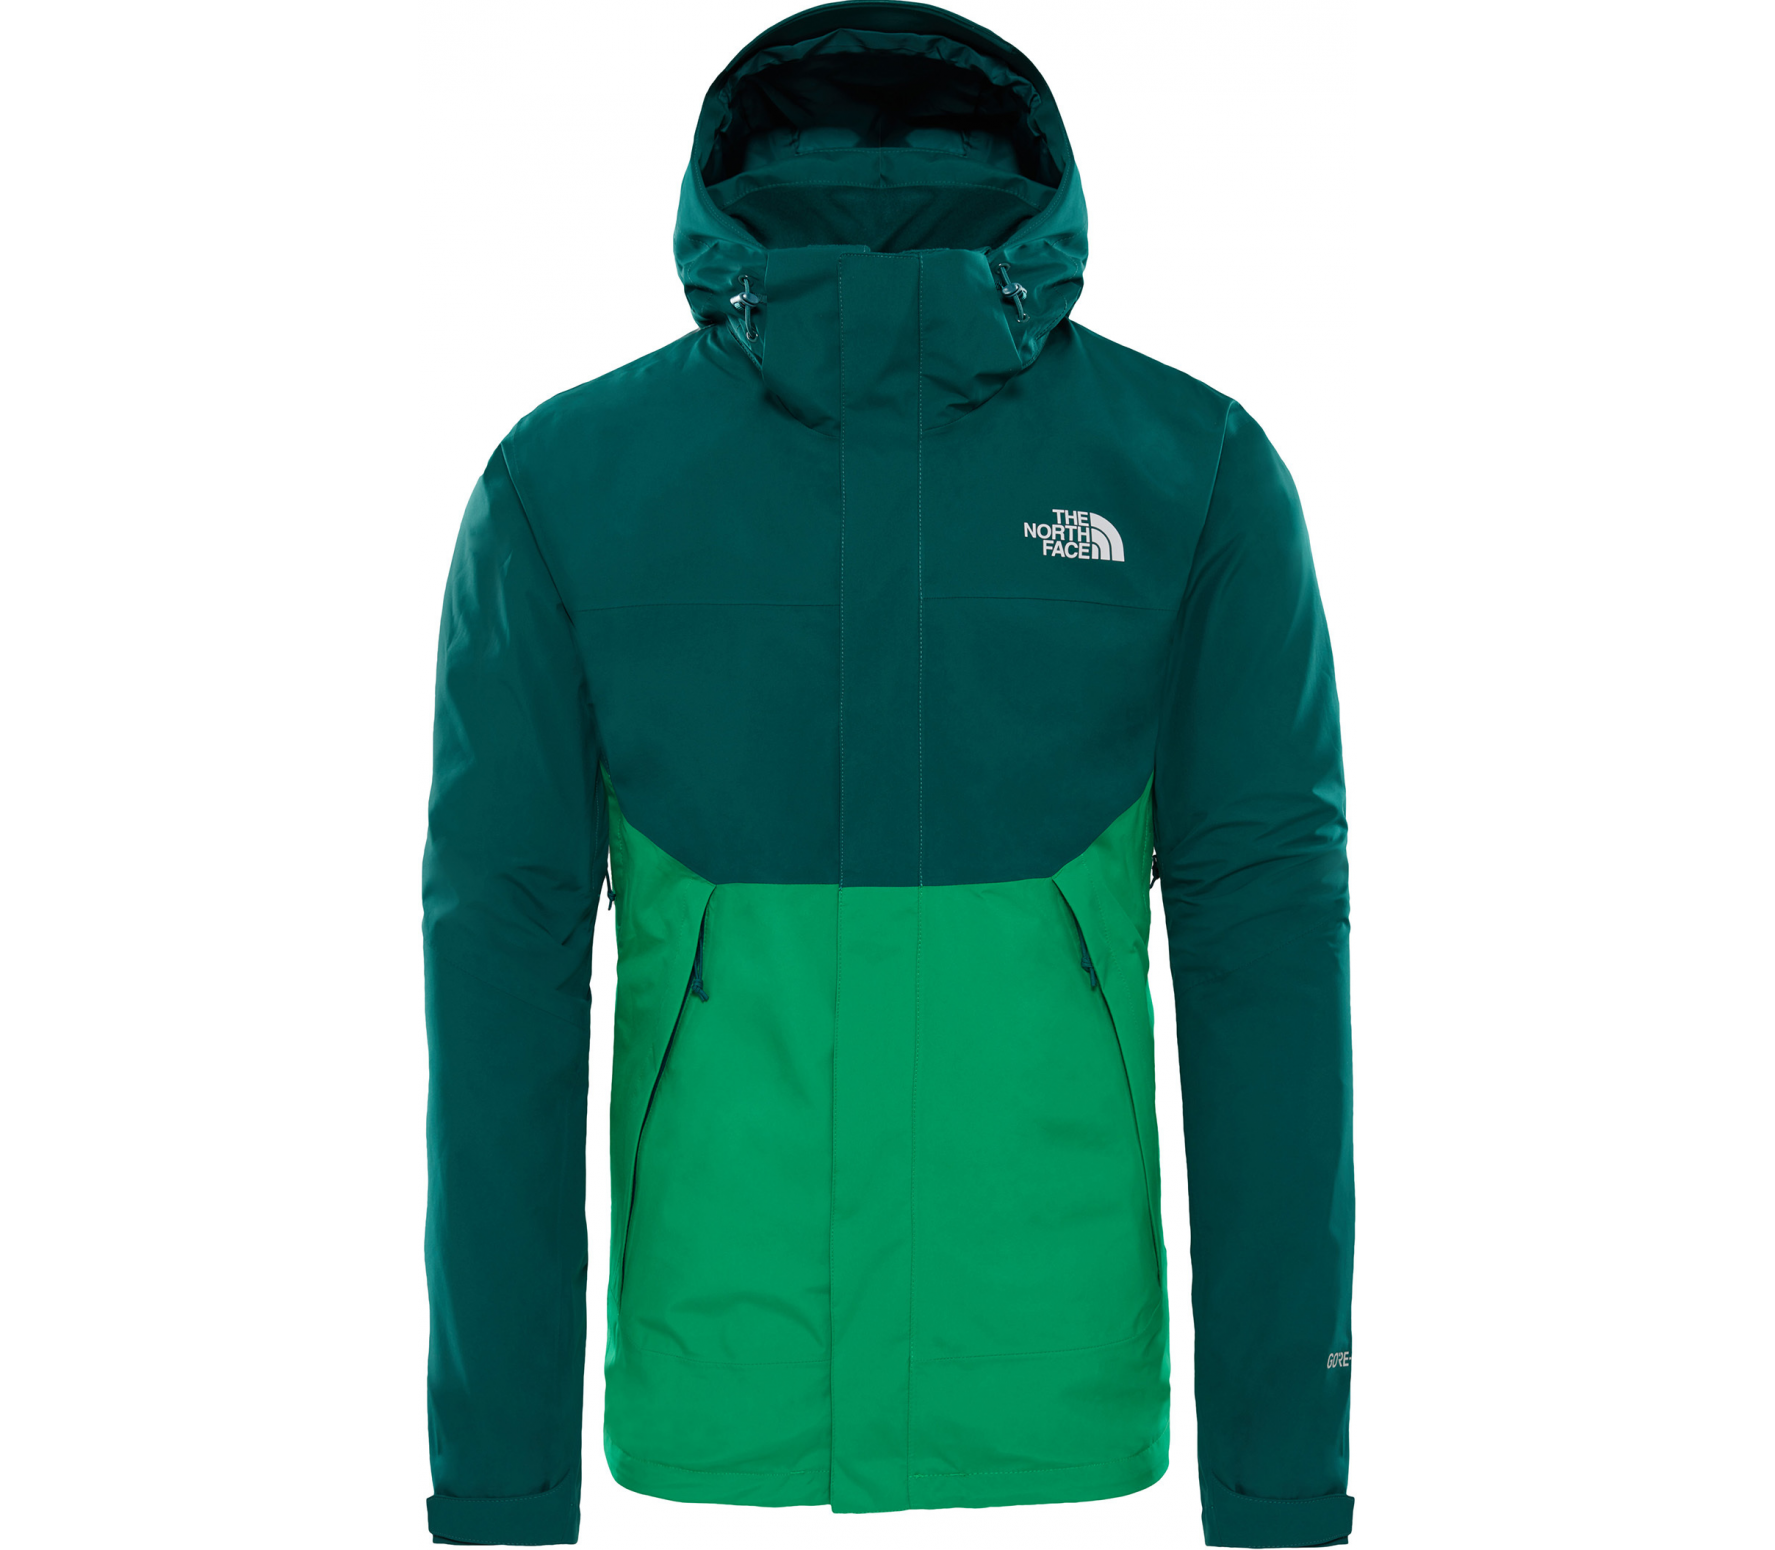 fd9fbfcd0 The North Face - Mountain Light II men's outdoor jacket (green)